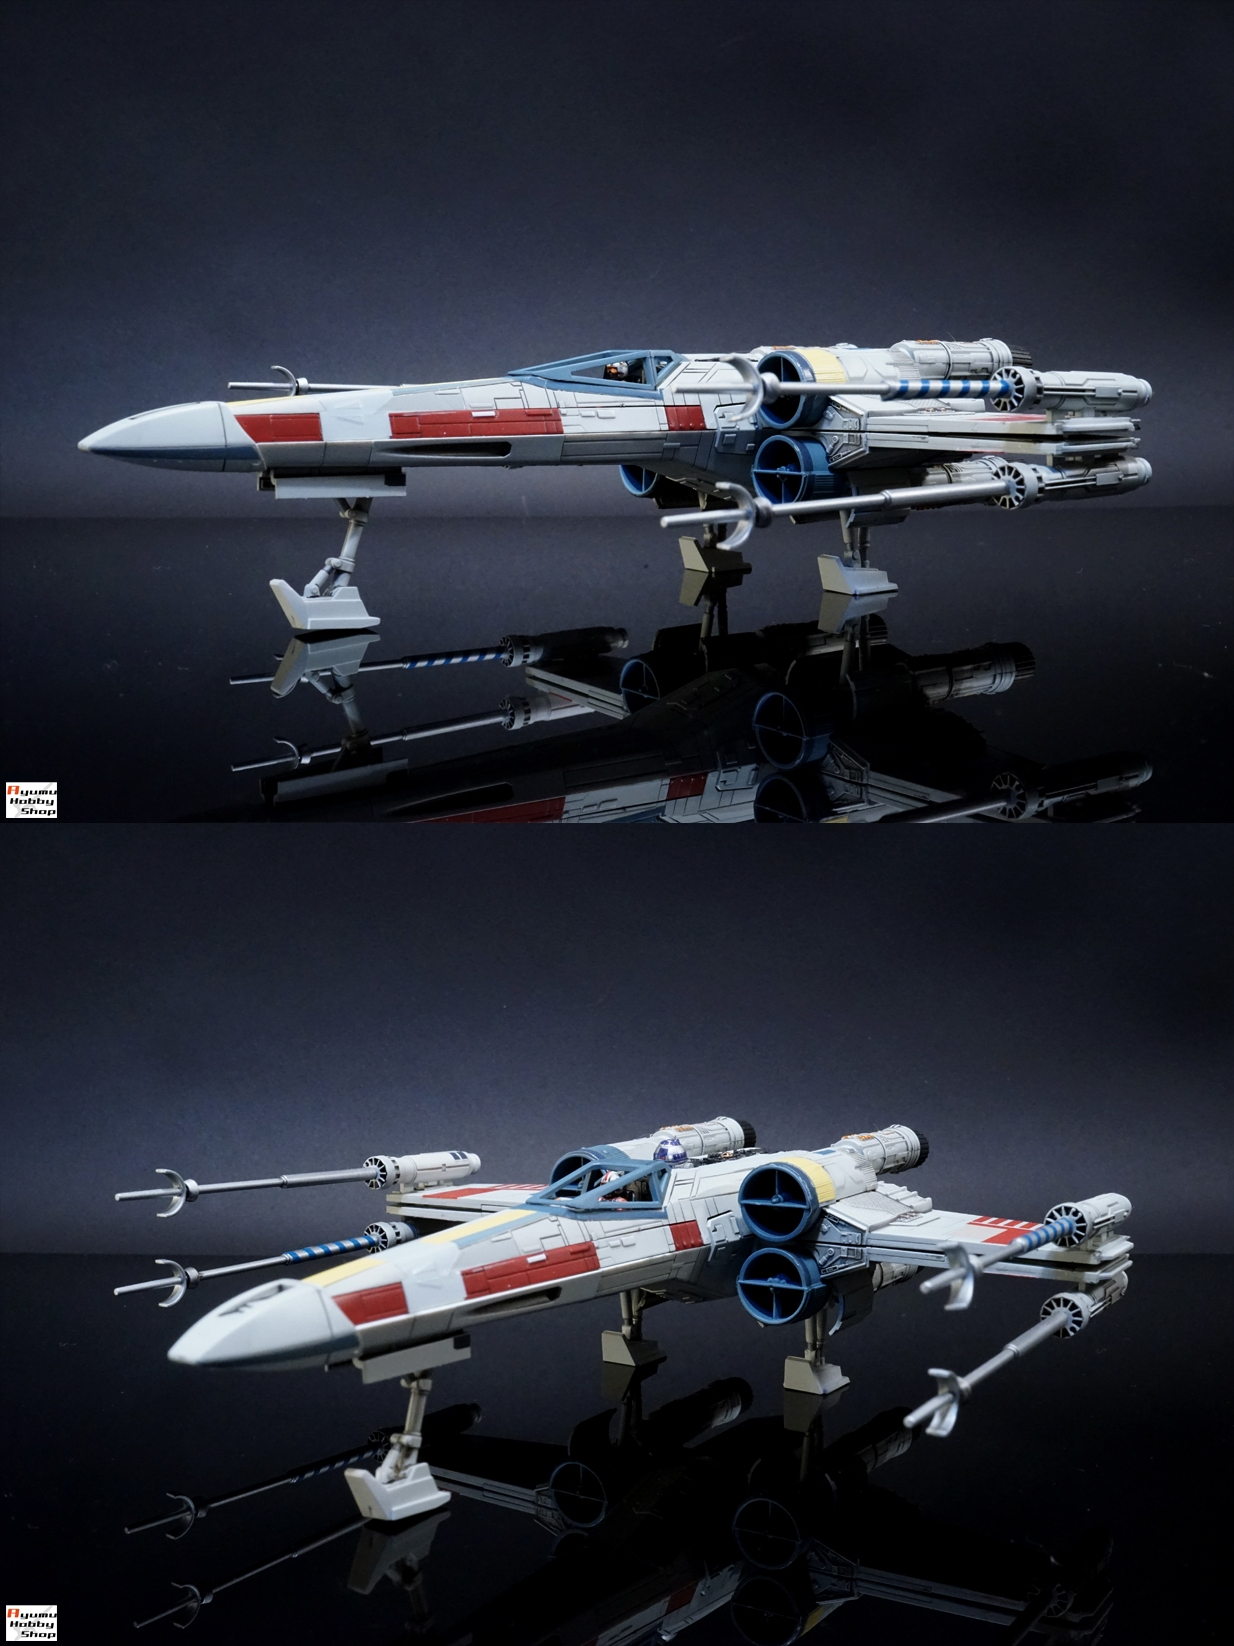 bandai x star wars 1 72 x wing starfighter painted build photoreview hi res images gunjap. Black Bedroom Furniture Sets. Home Design Ideas